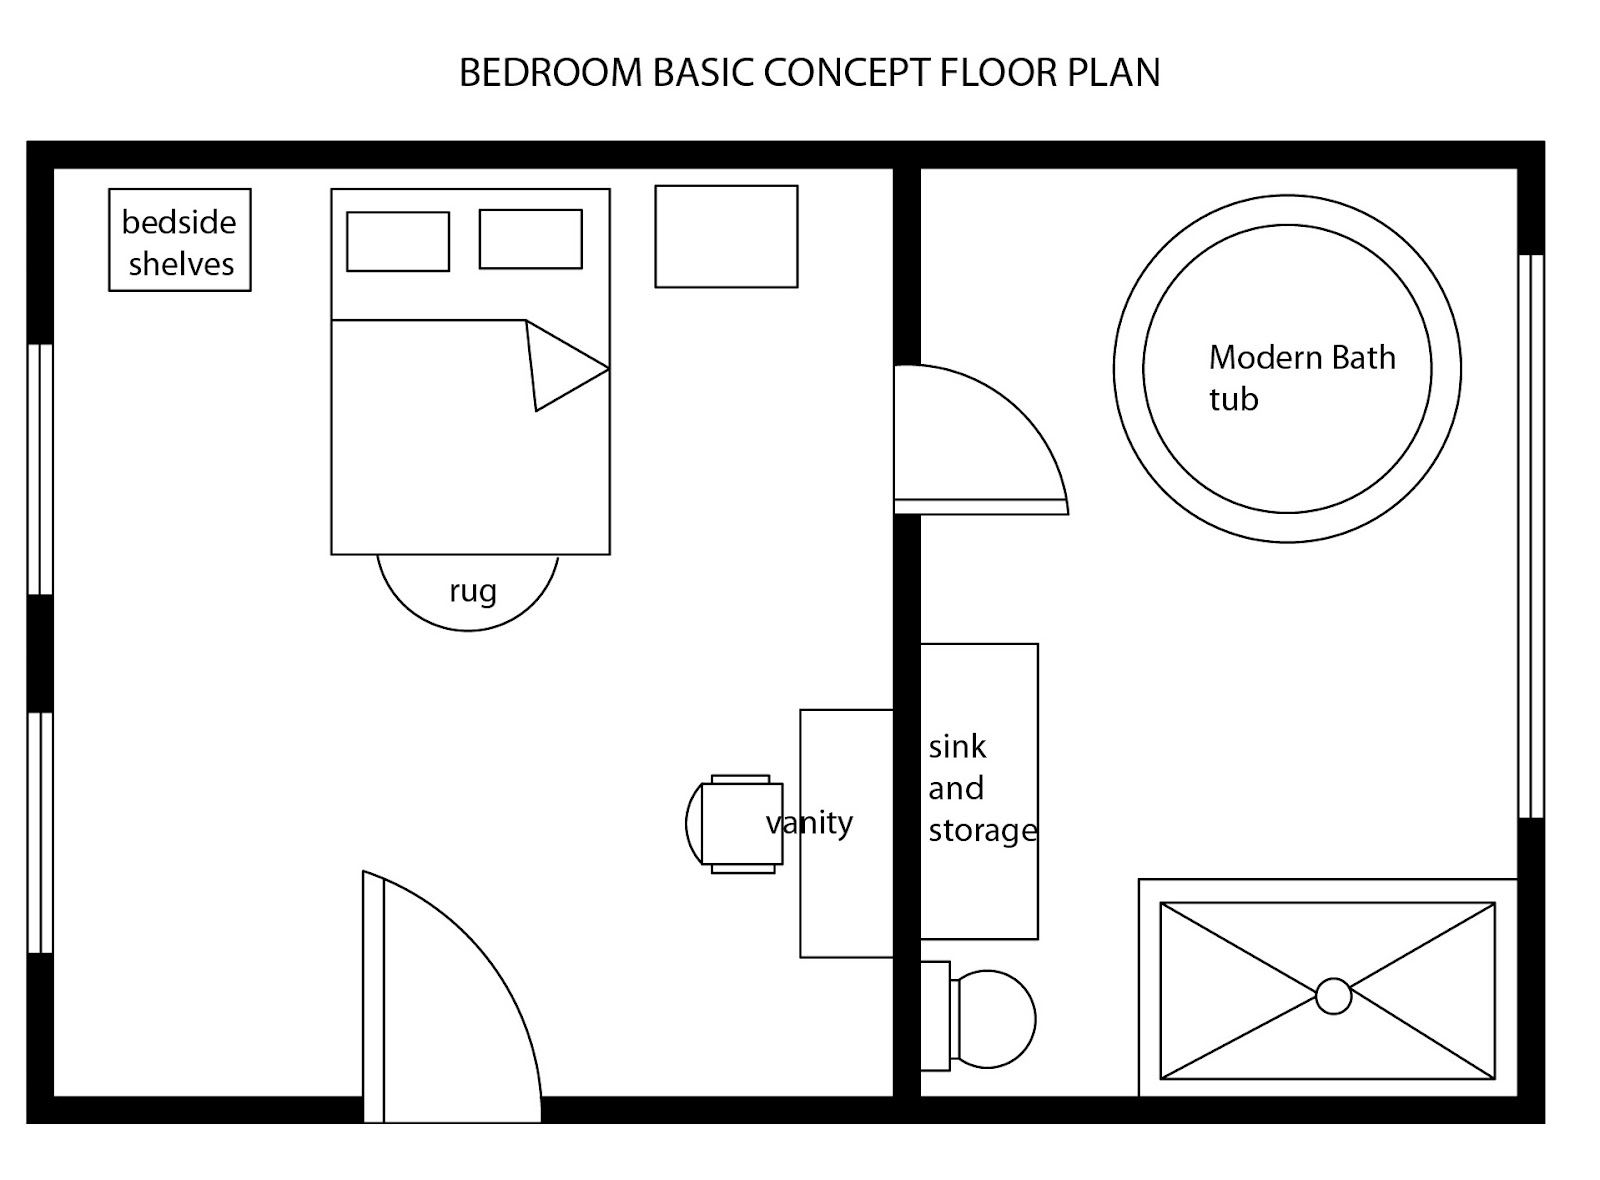 Interior design decor modern bedroom basic floor plan Room layout design online